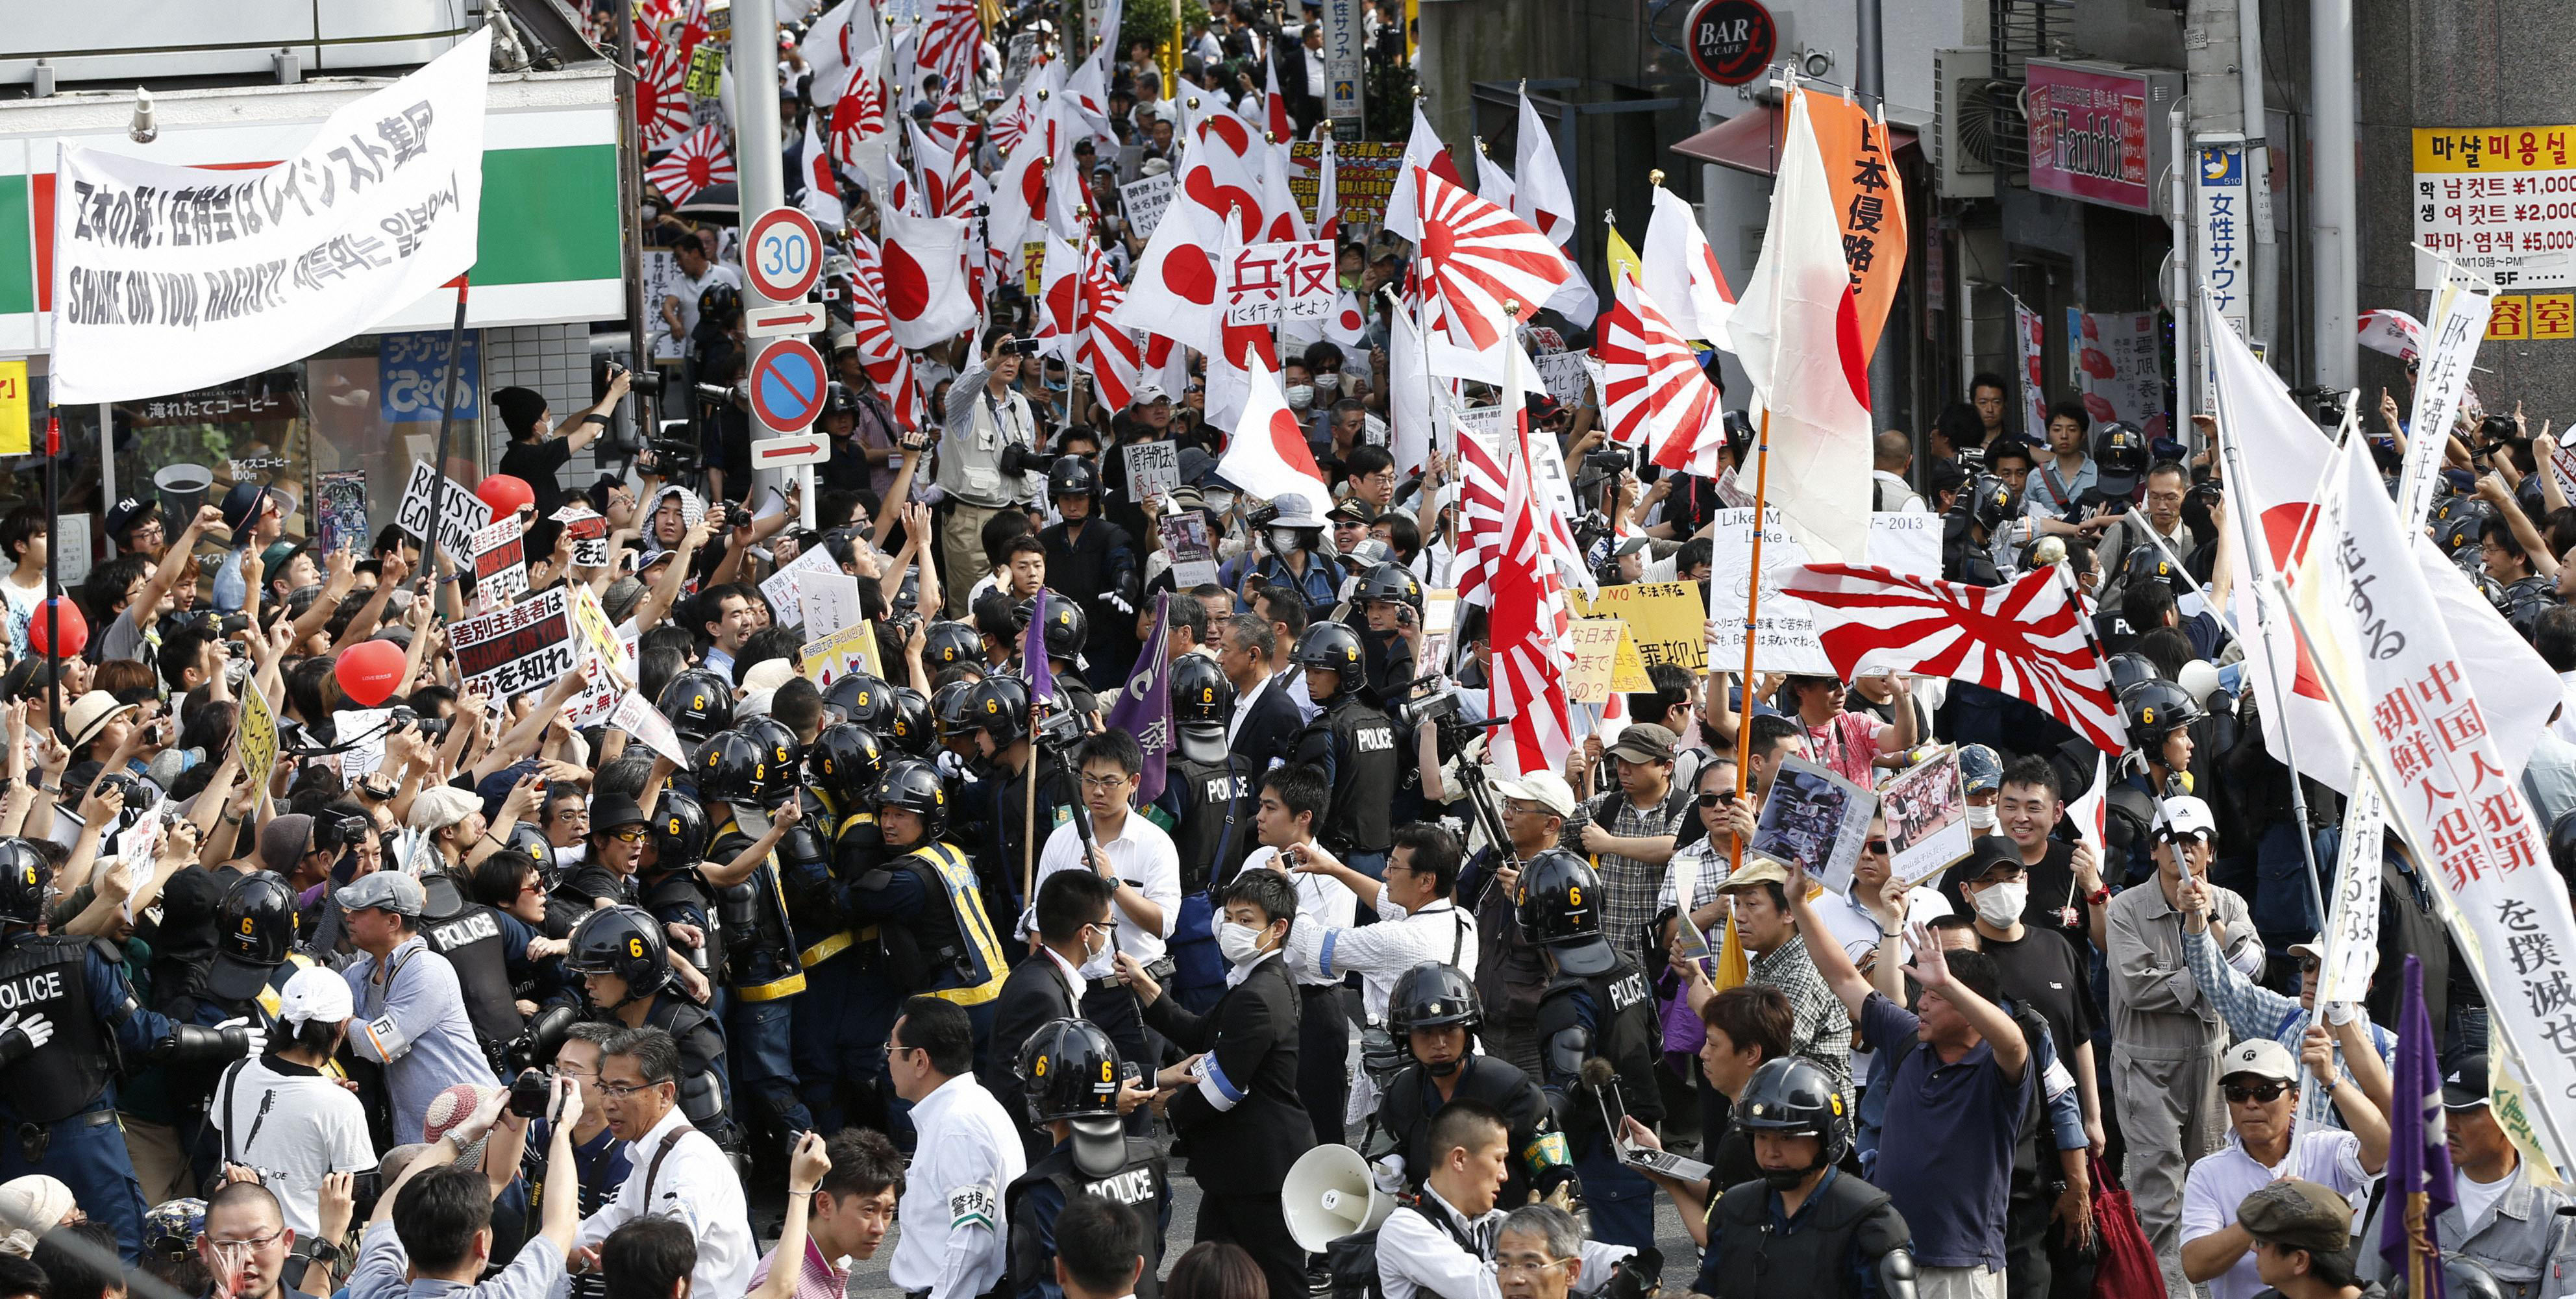 The far right that dare not speak its name: Police keep anti-Korean protesters away from anti-racist counterdemonstrators in Shinjuku, Tokyo, in June of last year. | KYODO